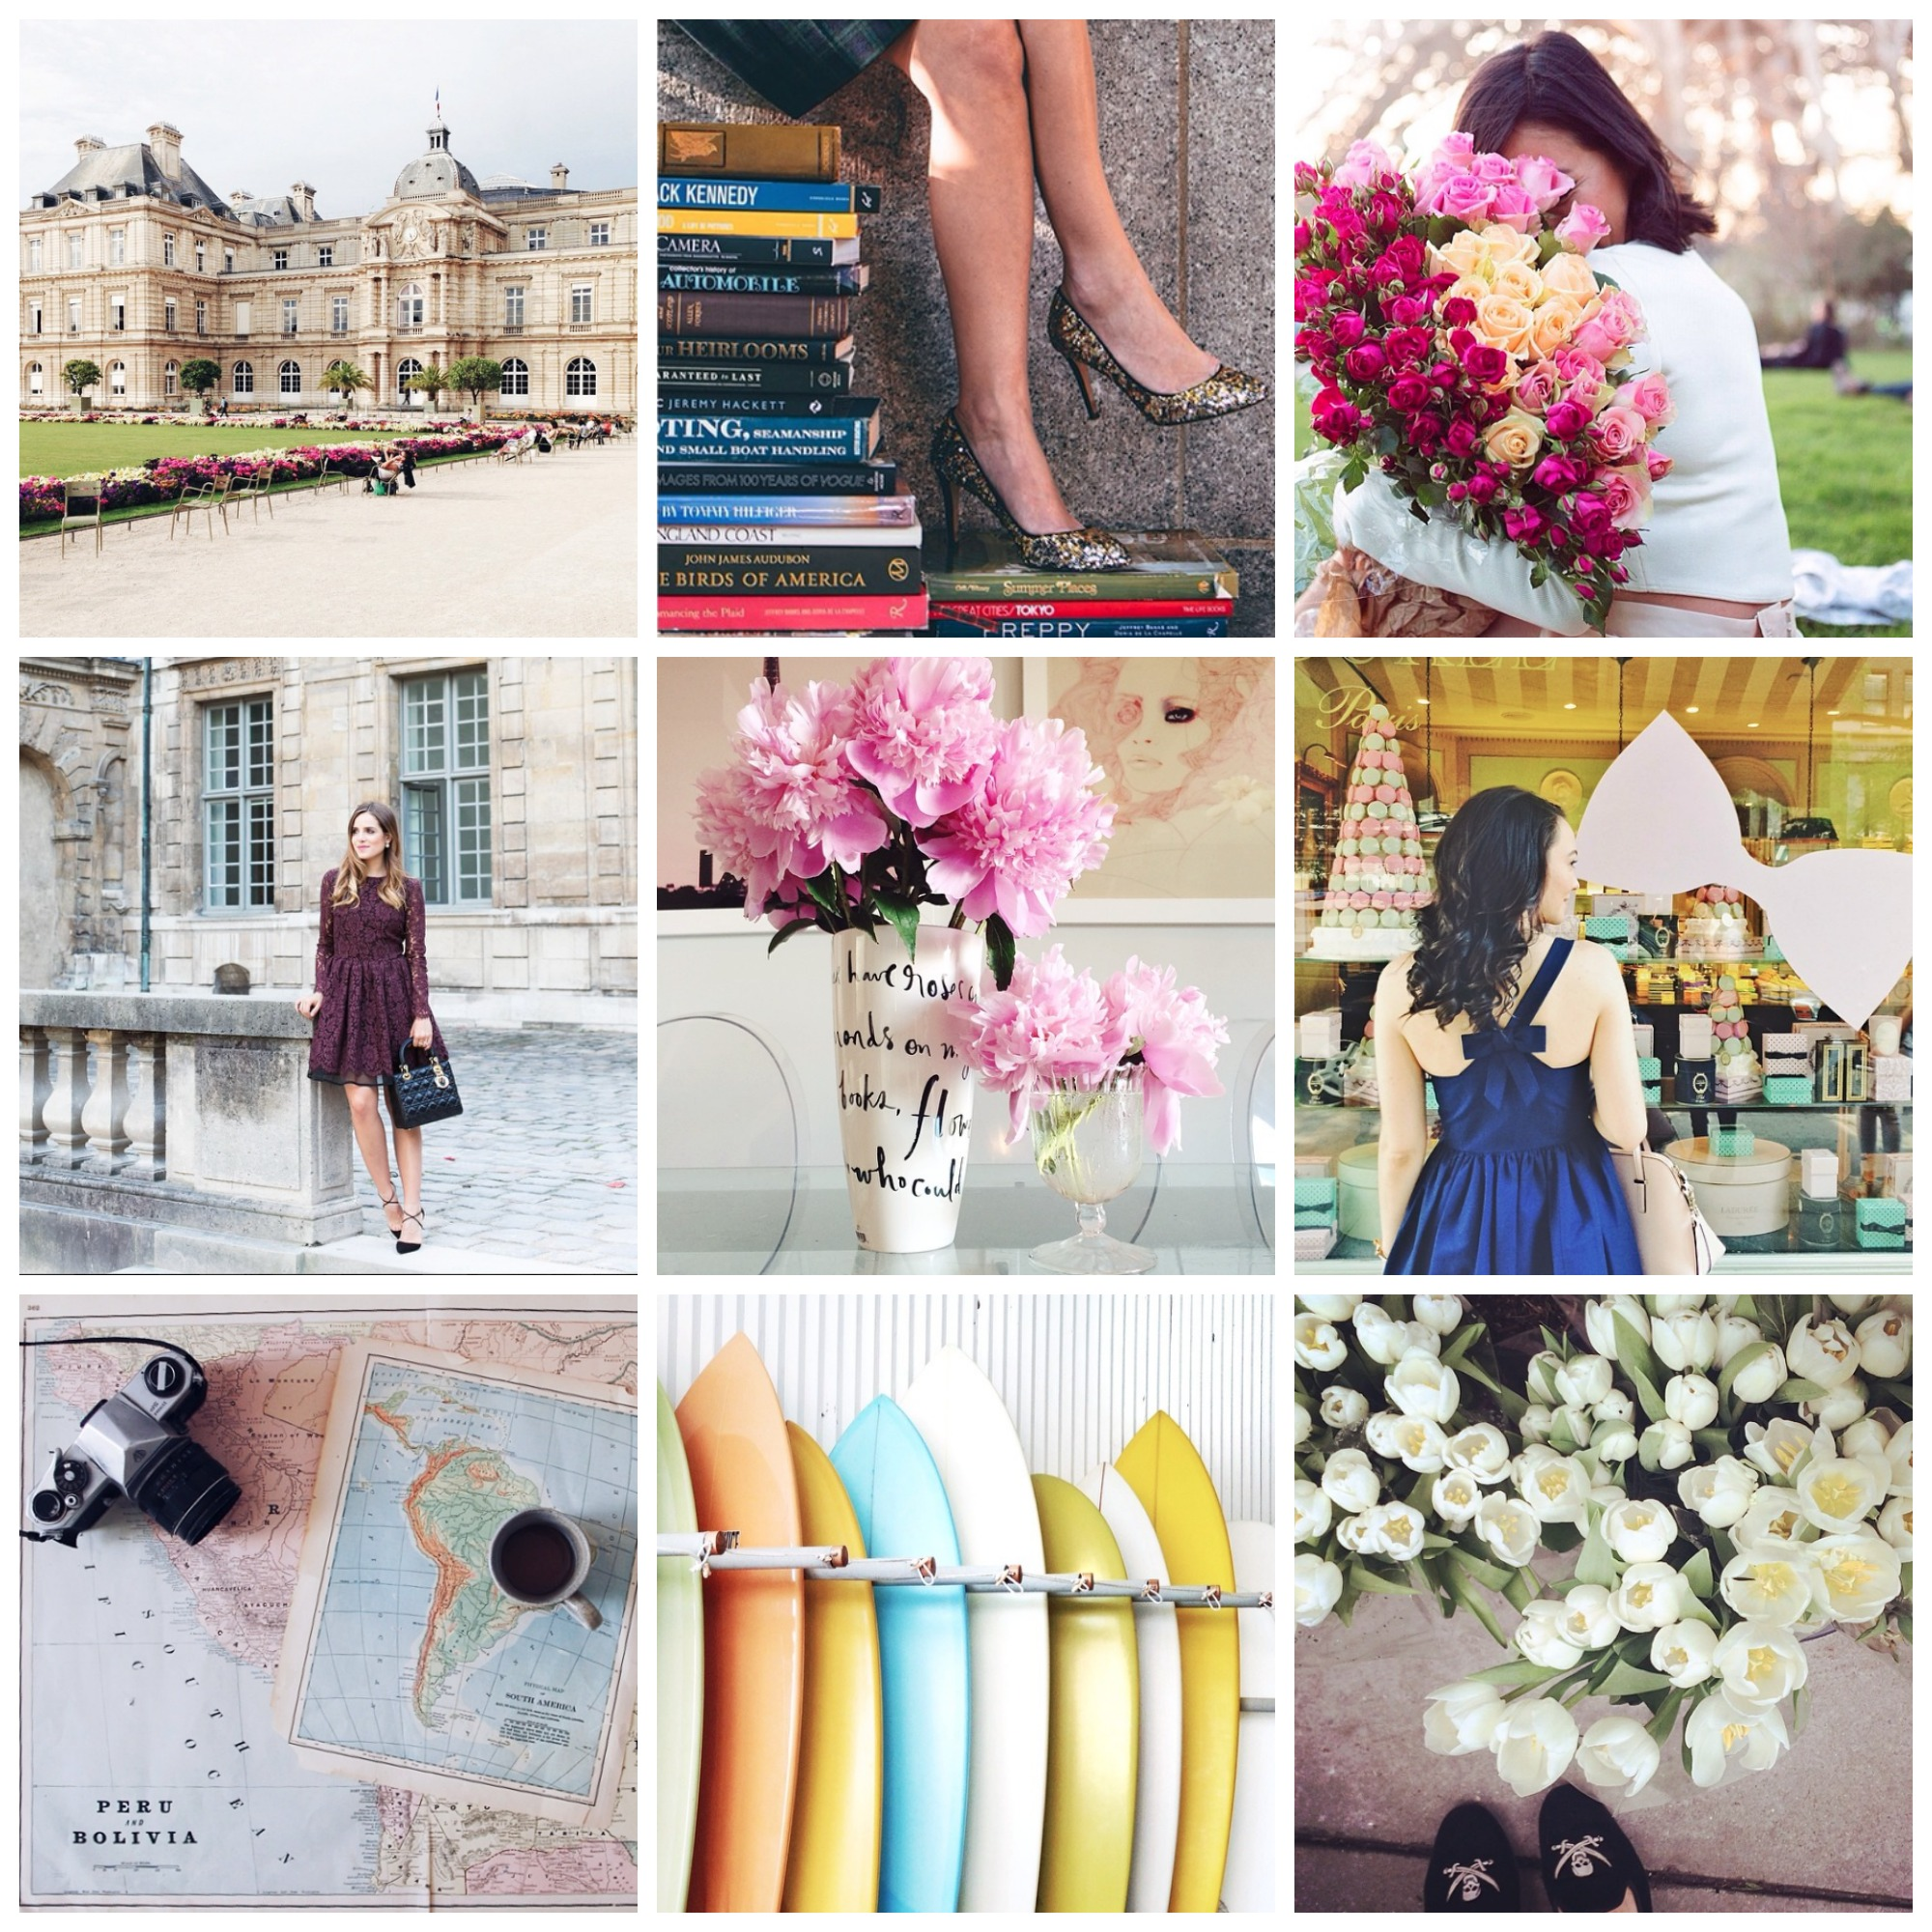 A Girl, A Style _ The Best Instagram Accounts